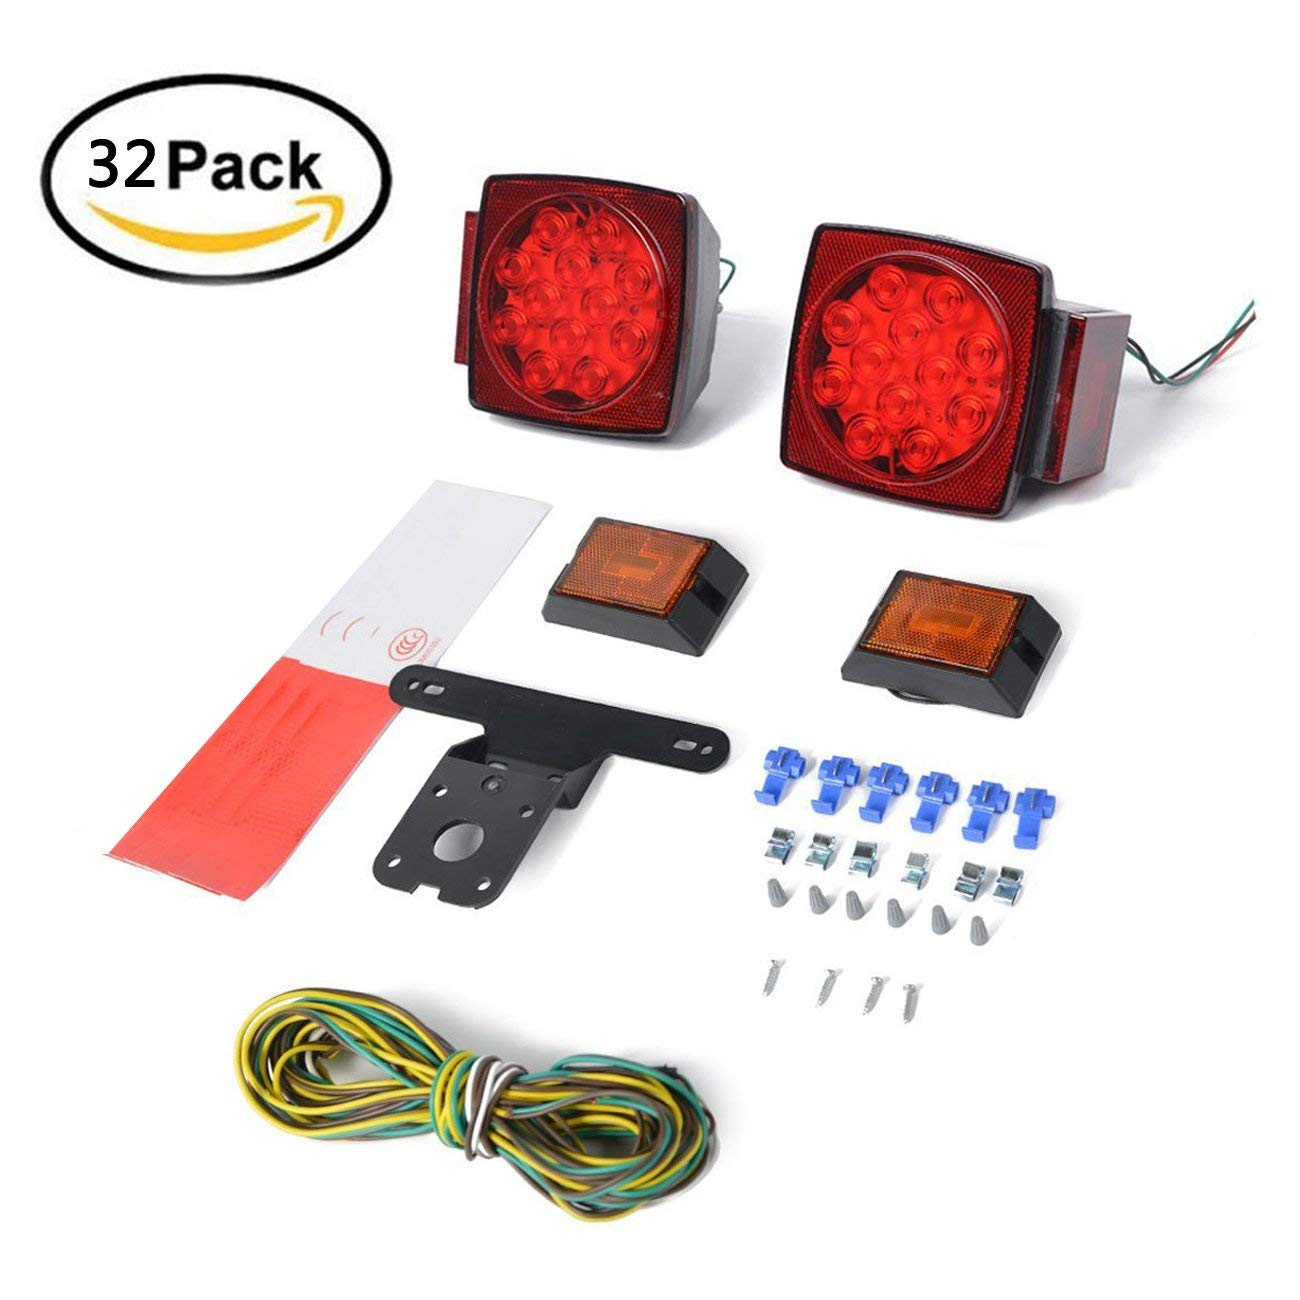 Cheap Trailer Light Covers Find Deals On Line Wiring Lights Ireland Get Quotations 12v Kit Taillight With Led Wire Reflective Strip For Rv